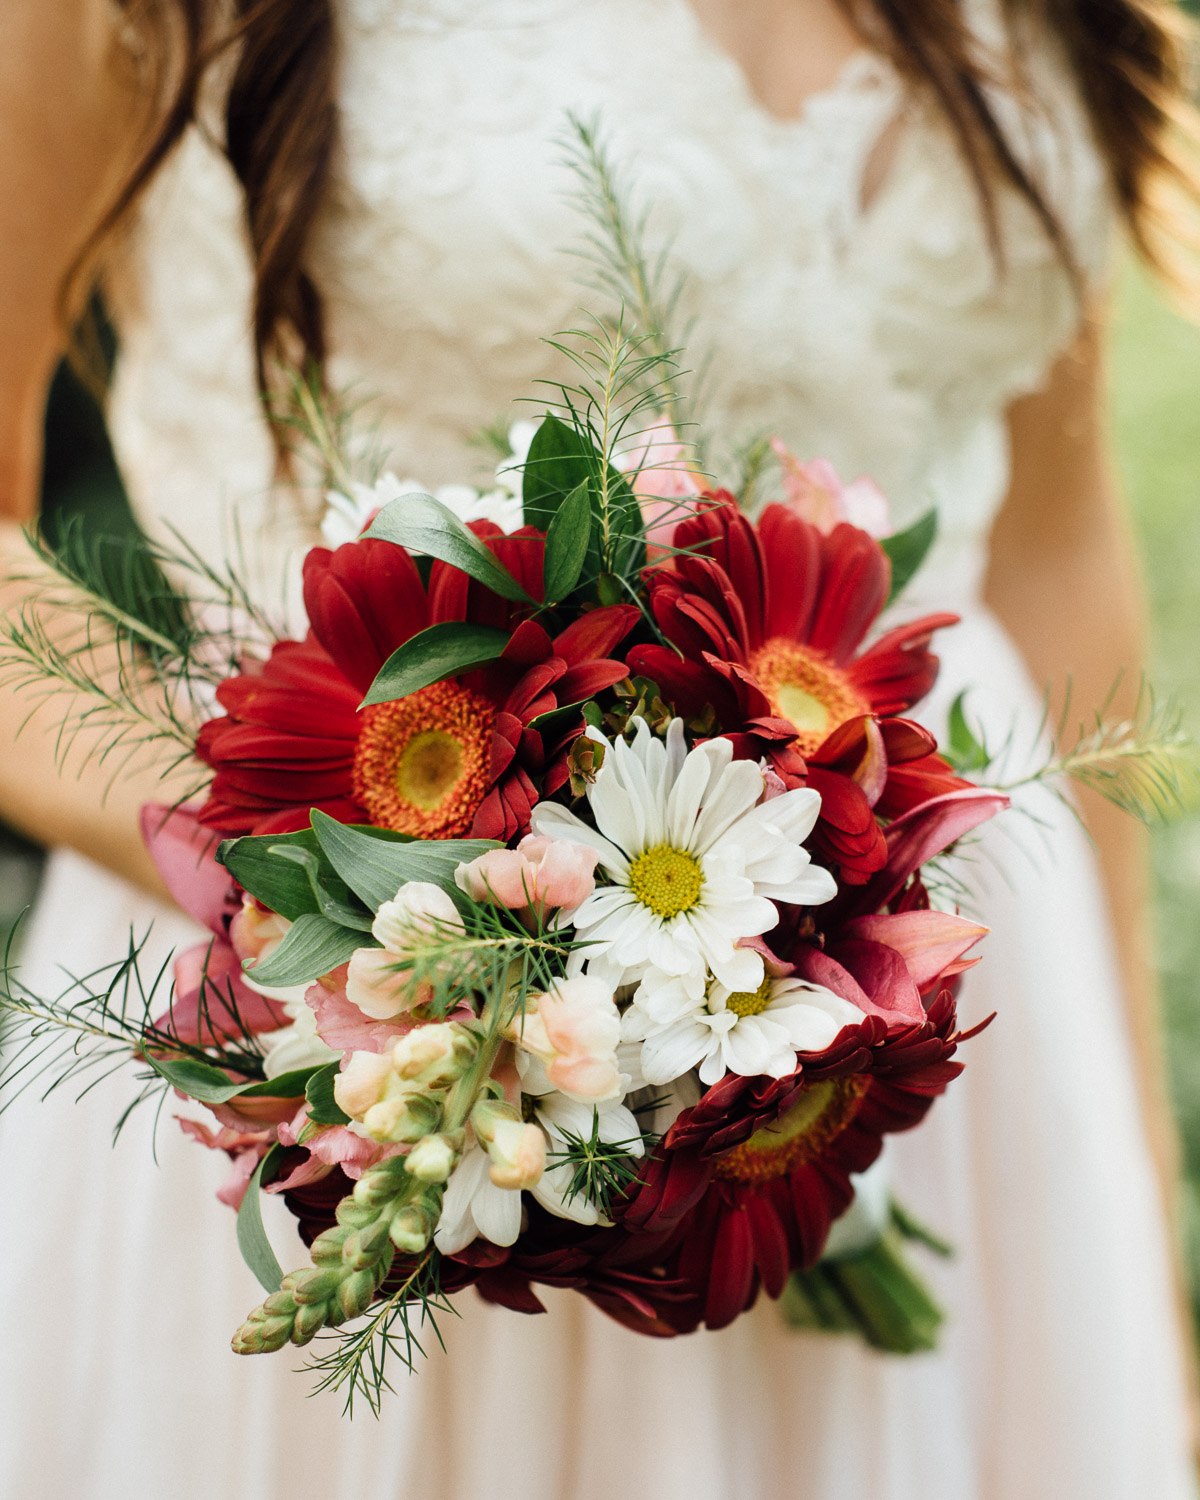 wedding-styled-shoot-1 Salt Lake City | Mountain Wedding Inspiration